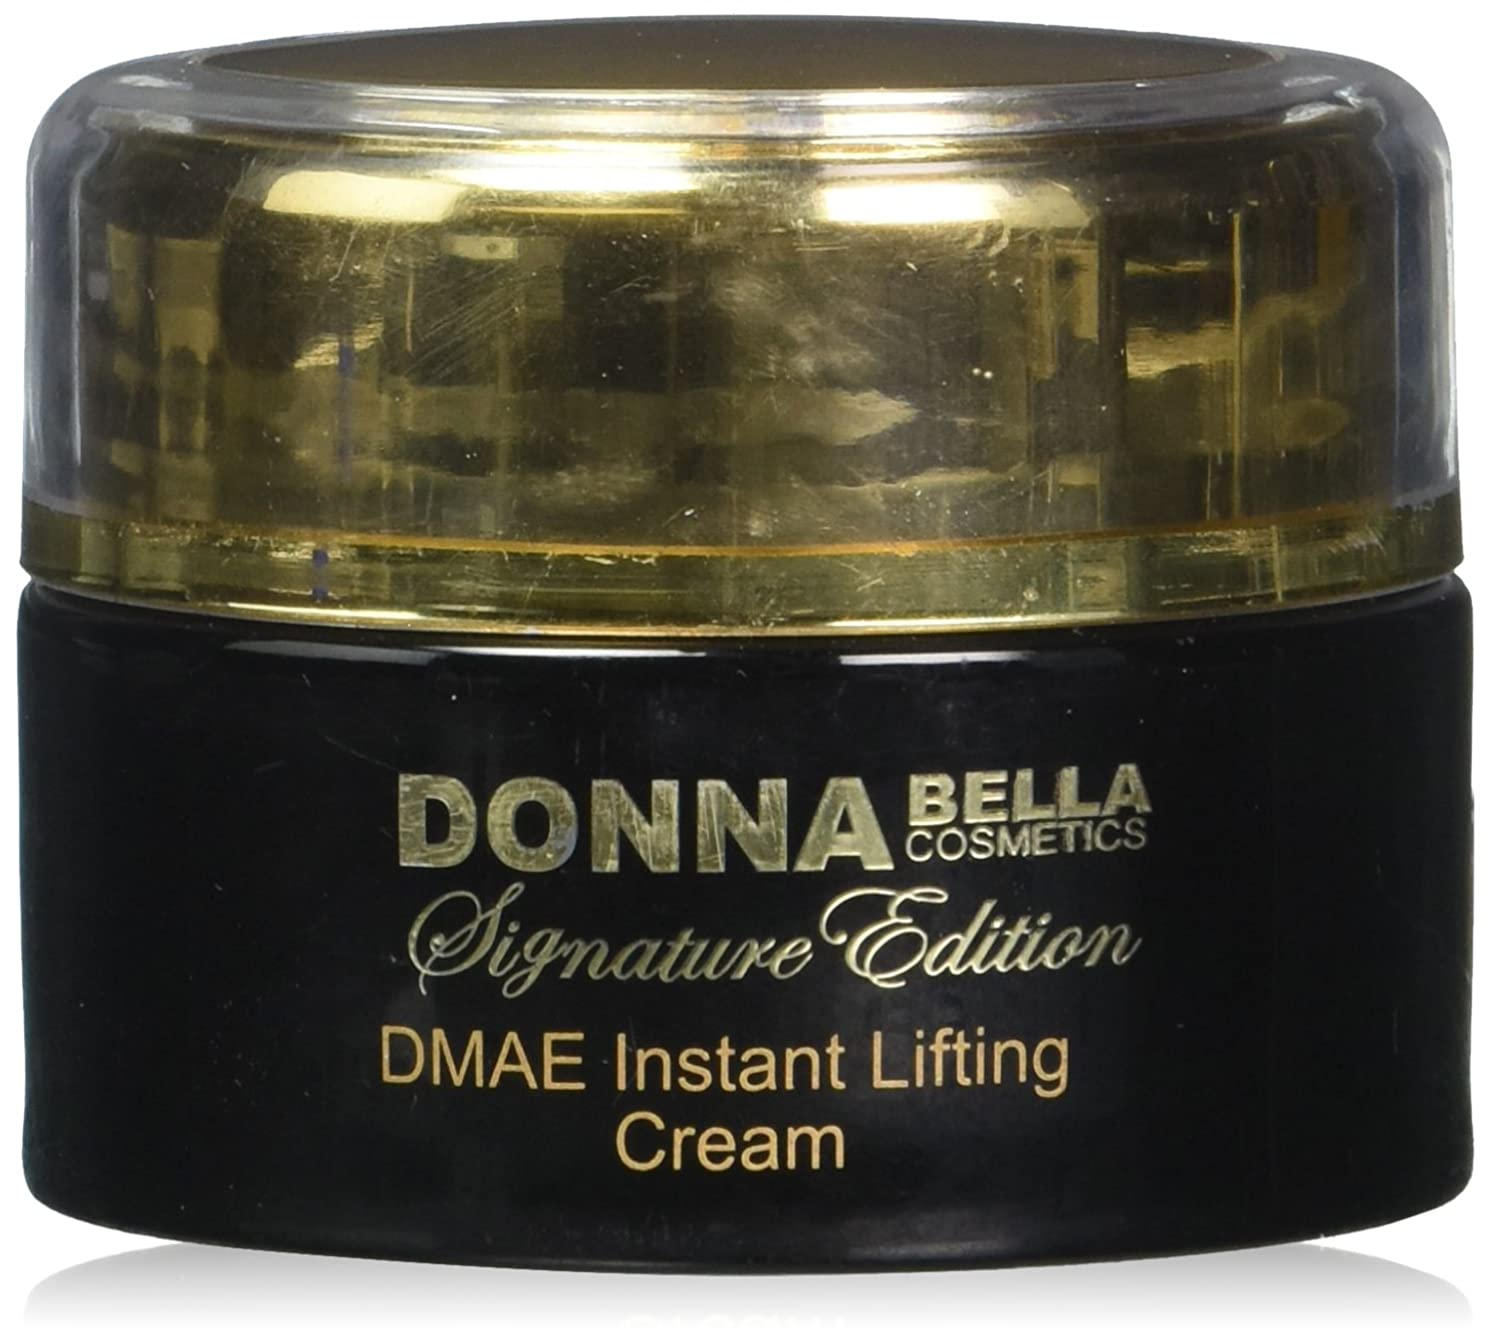 24k Caviar Gold DMAE Facial Lifting Cream THIS PRODUCT IS NEW BUT IT DOES  NOT COME WITH A BOX